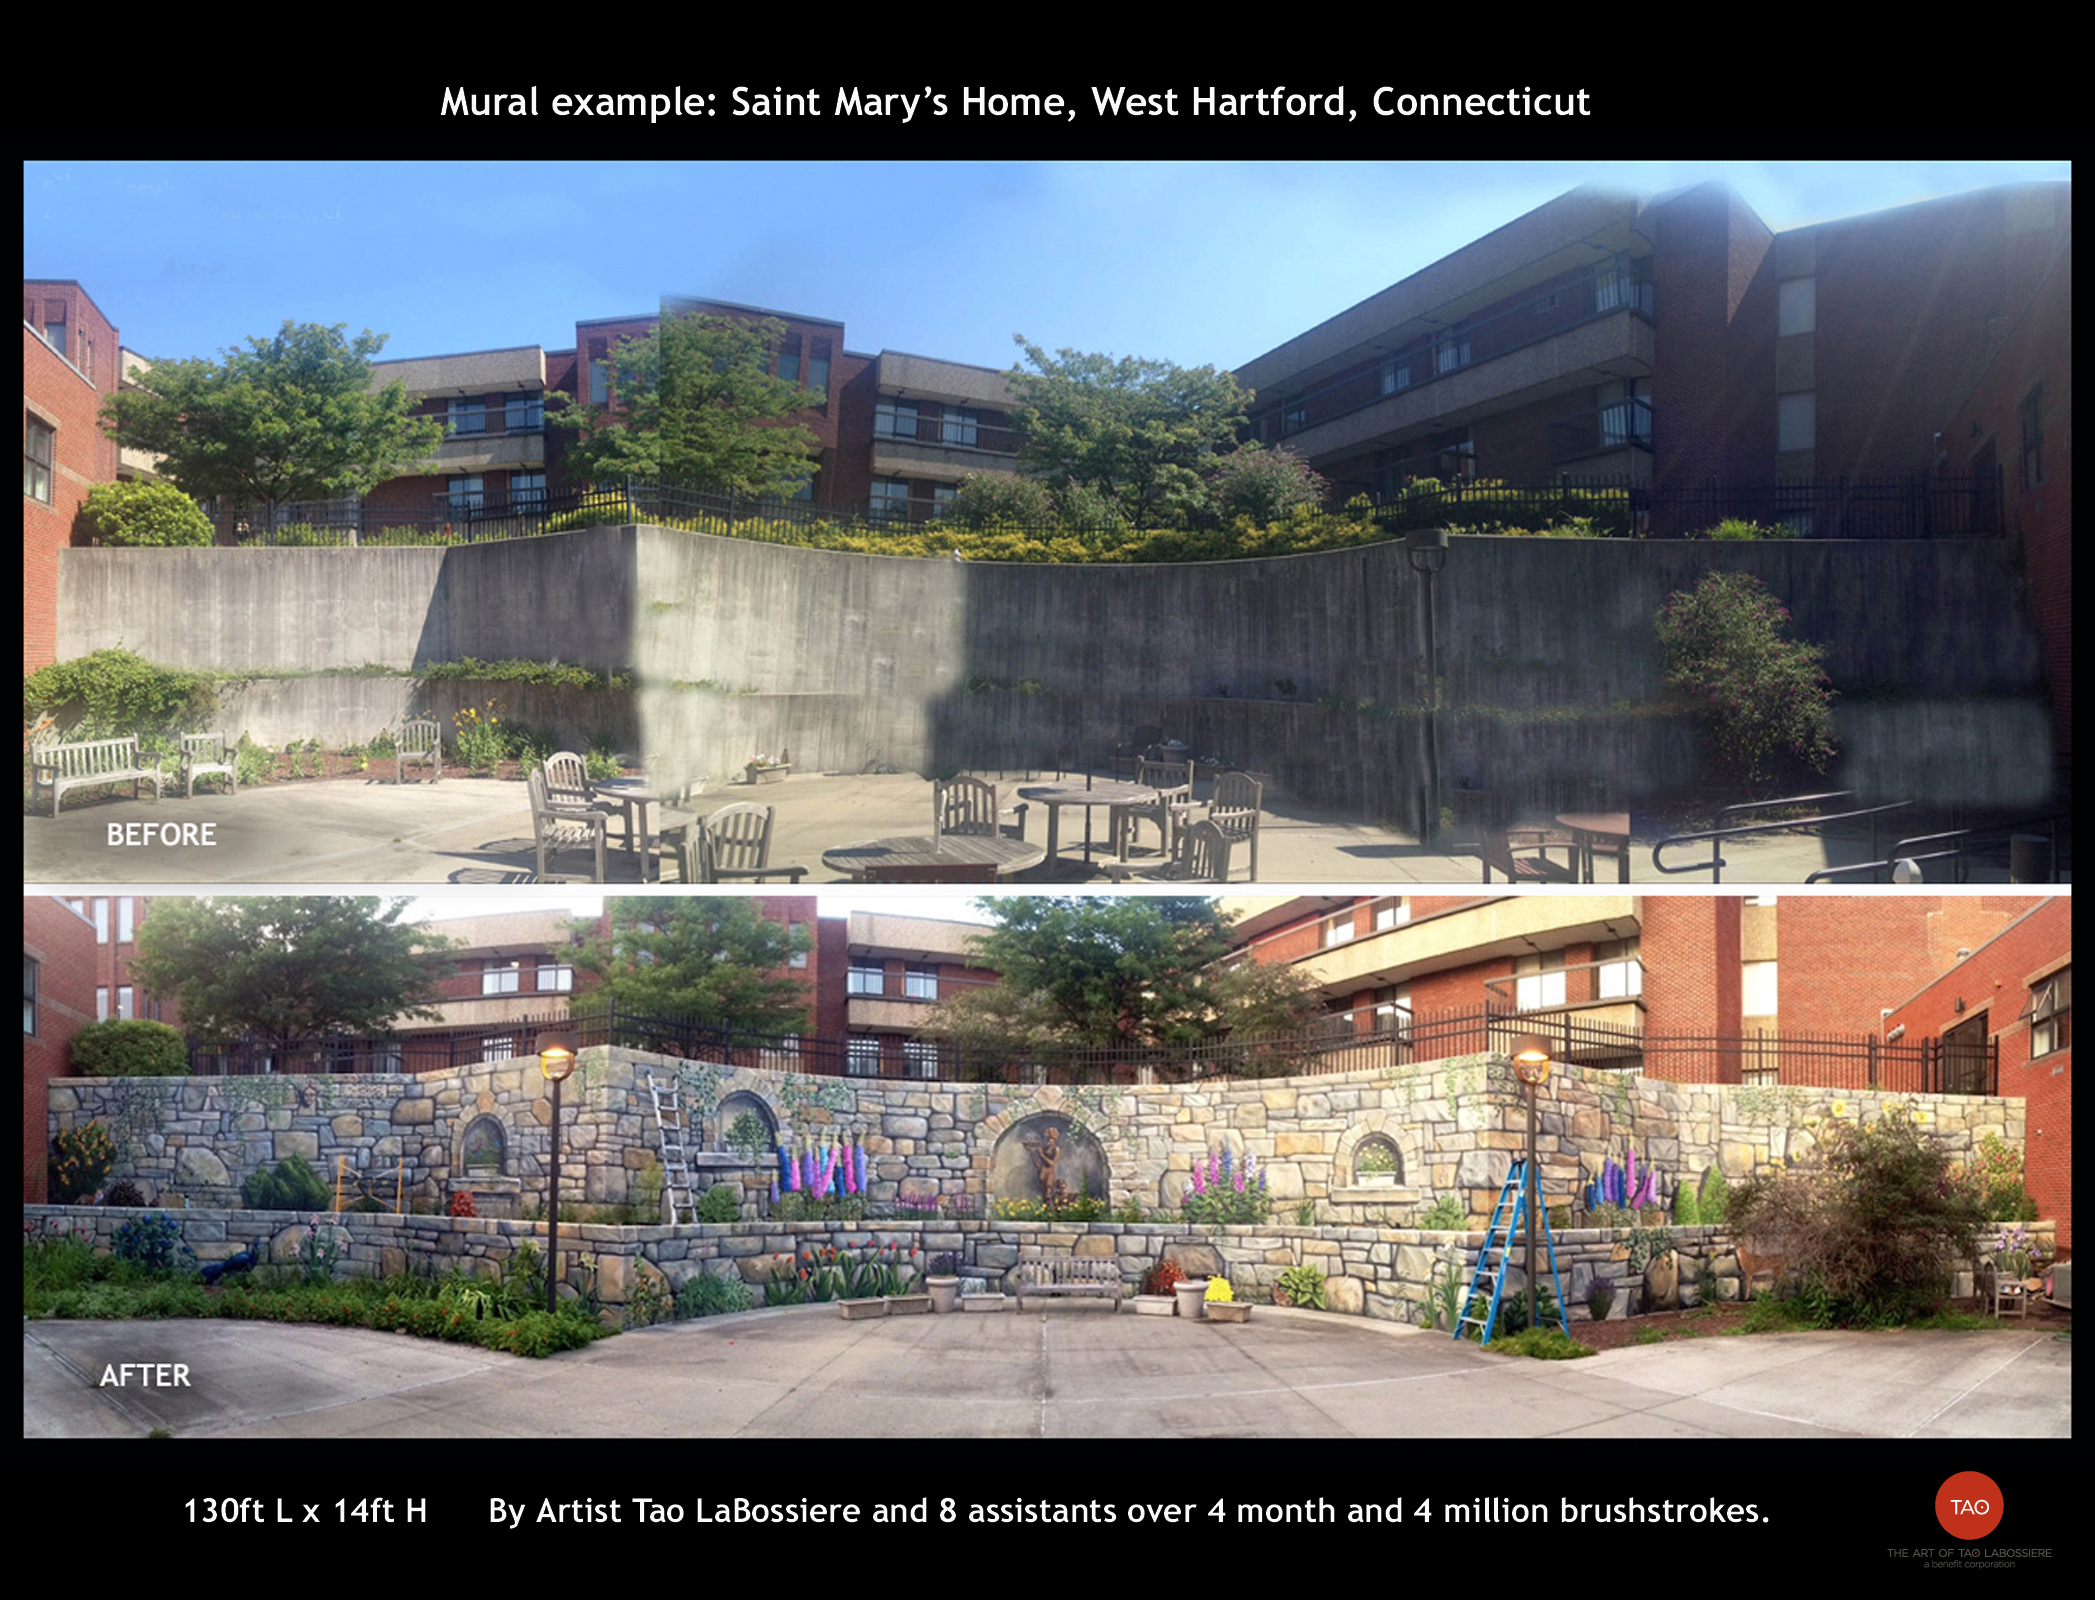 Saint Mary Home before and after. We transformed this depressing wall into a pleasurable outdoor experience for the client, their residents and visitors.